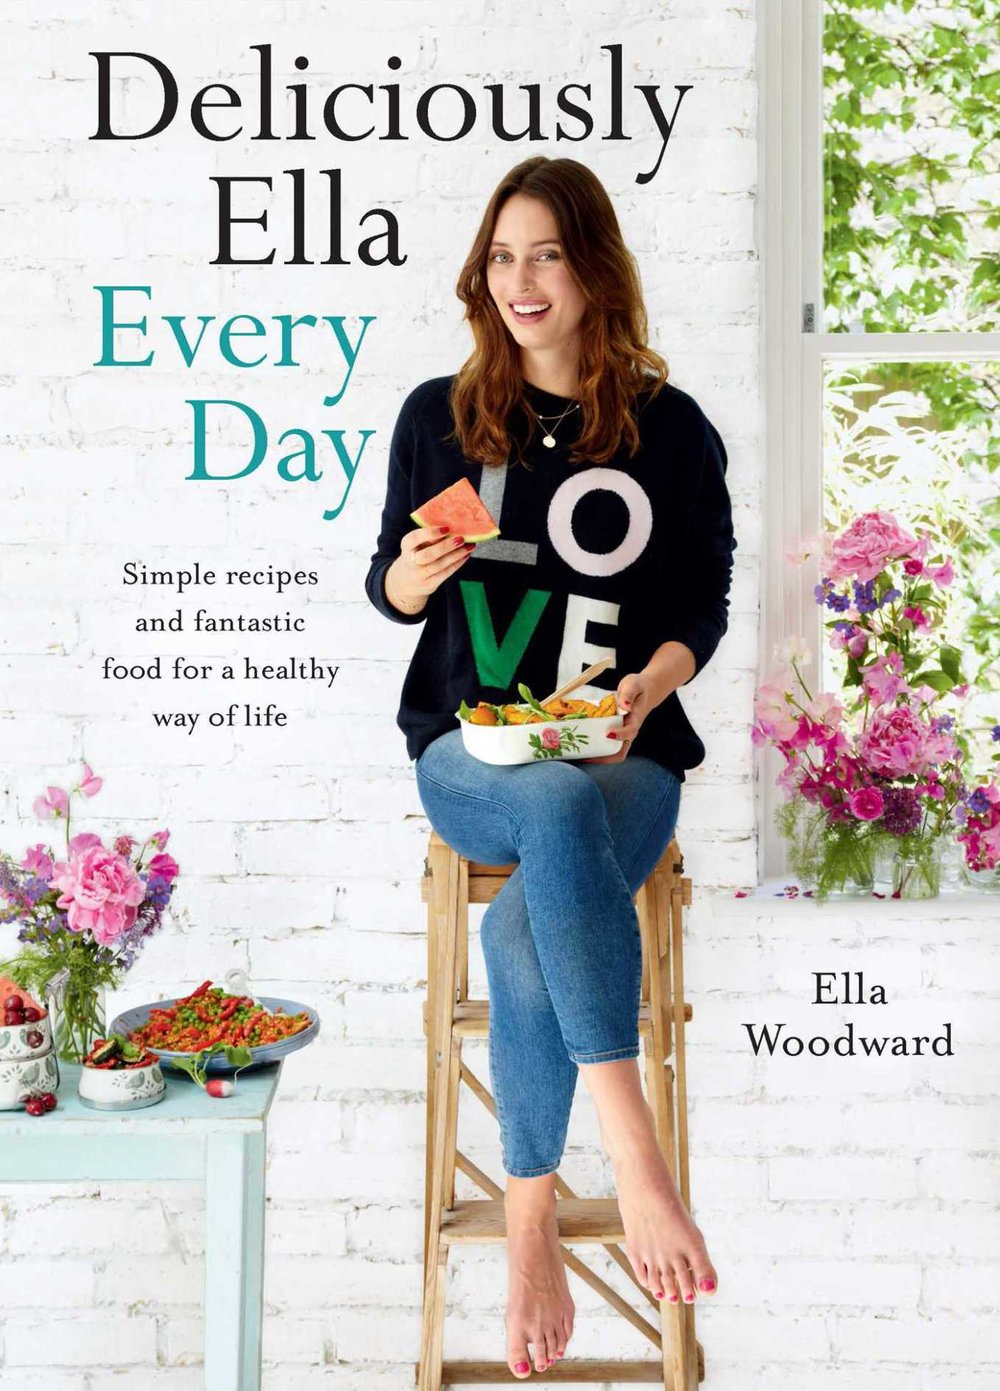 deliciously-ella-every-day-9781501142659_hr.jpg